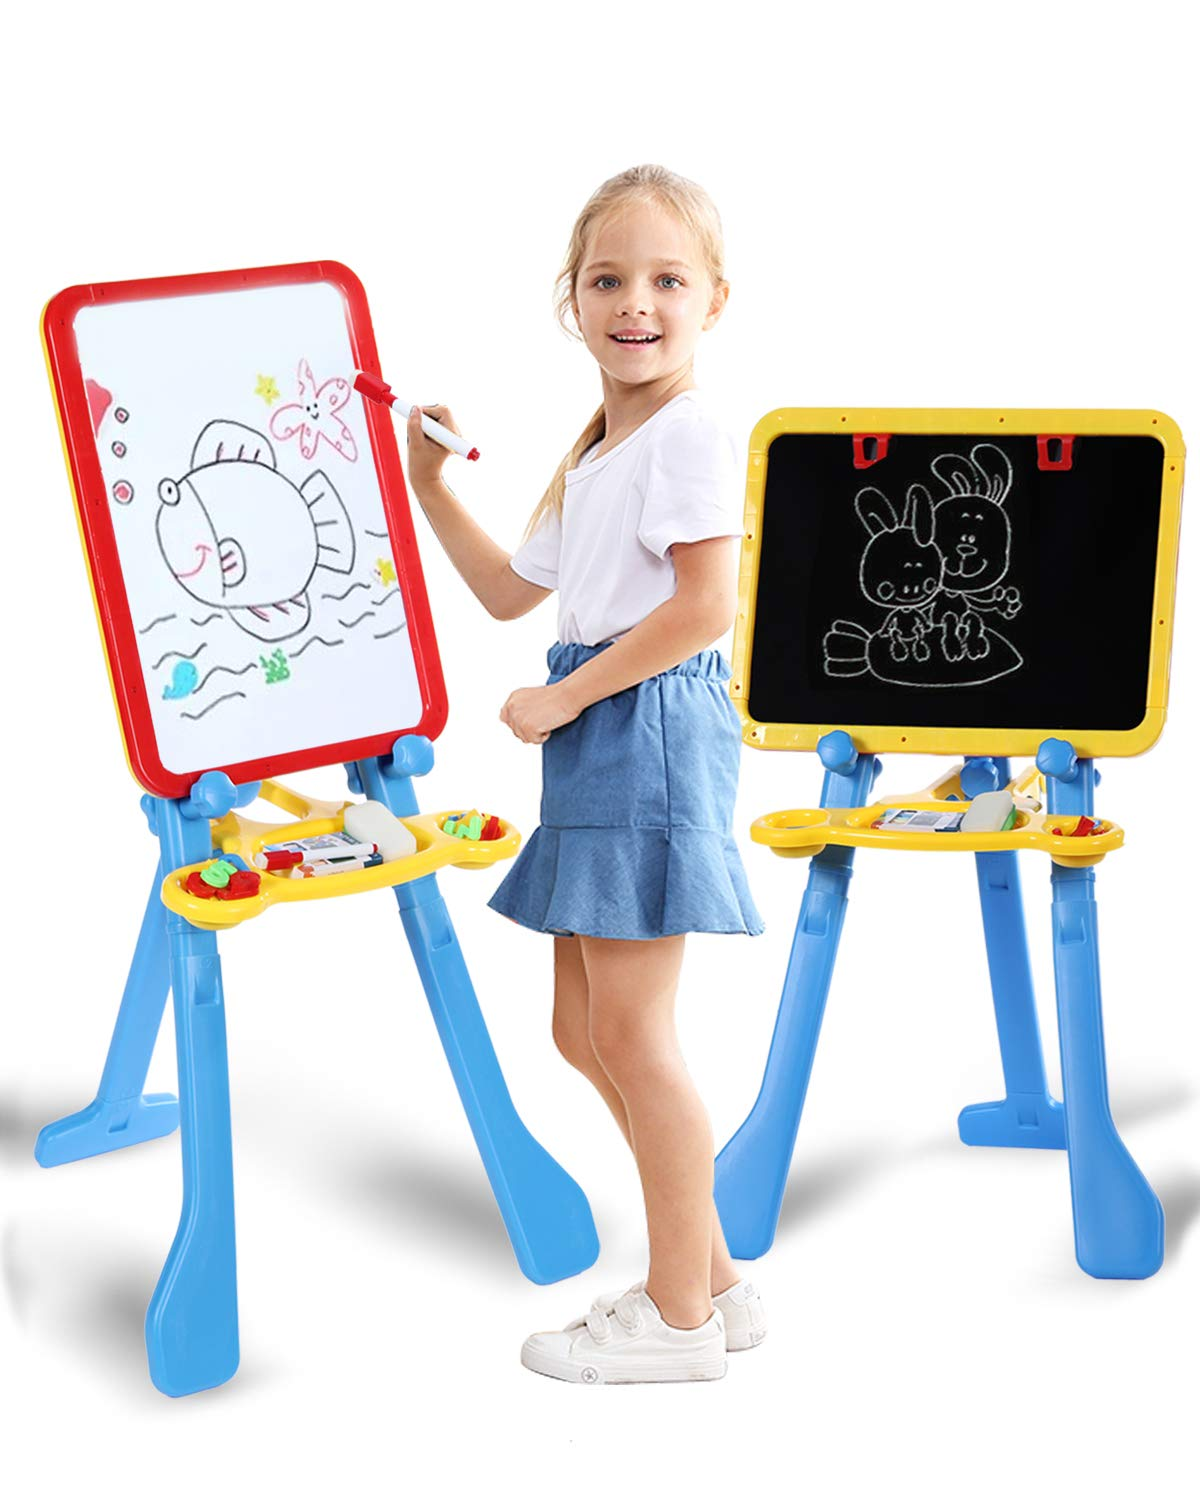 STEAM Life Art Easel for Kids | 4 in 1 Magnetic Board, Chalkboard, Painting Easel, and Drawing White Board for Kids | Includes Magnetic Letters and Numbers | Easy Storage and Adjustable Height 61ZPmi-EXWL